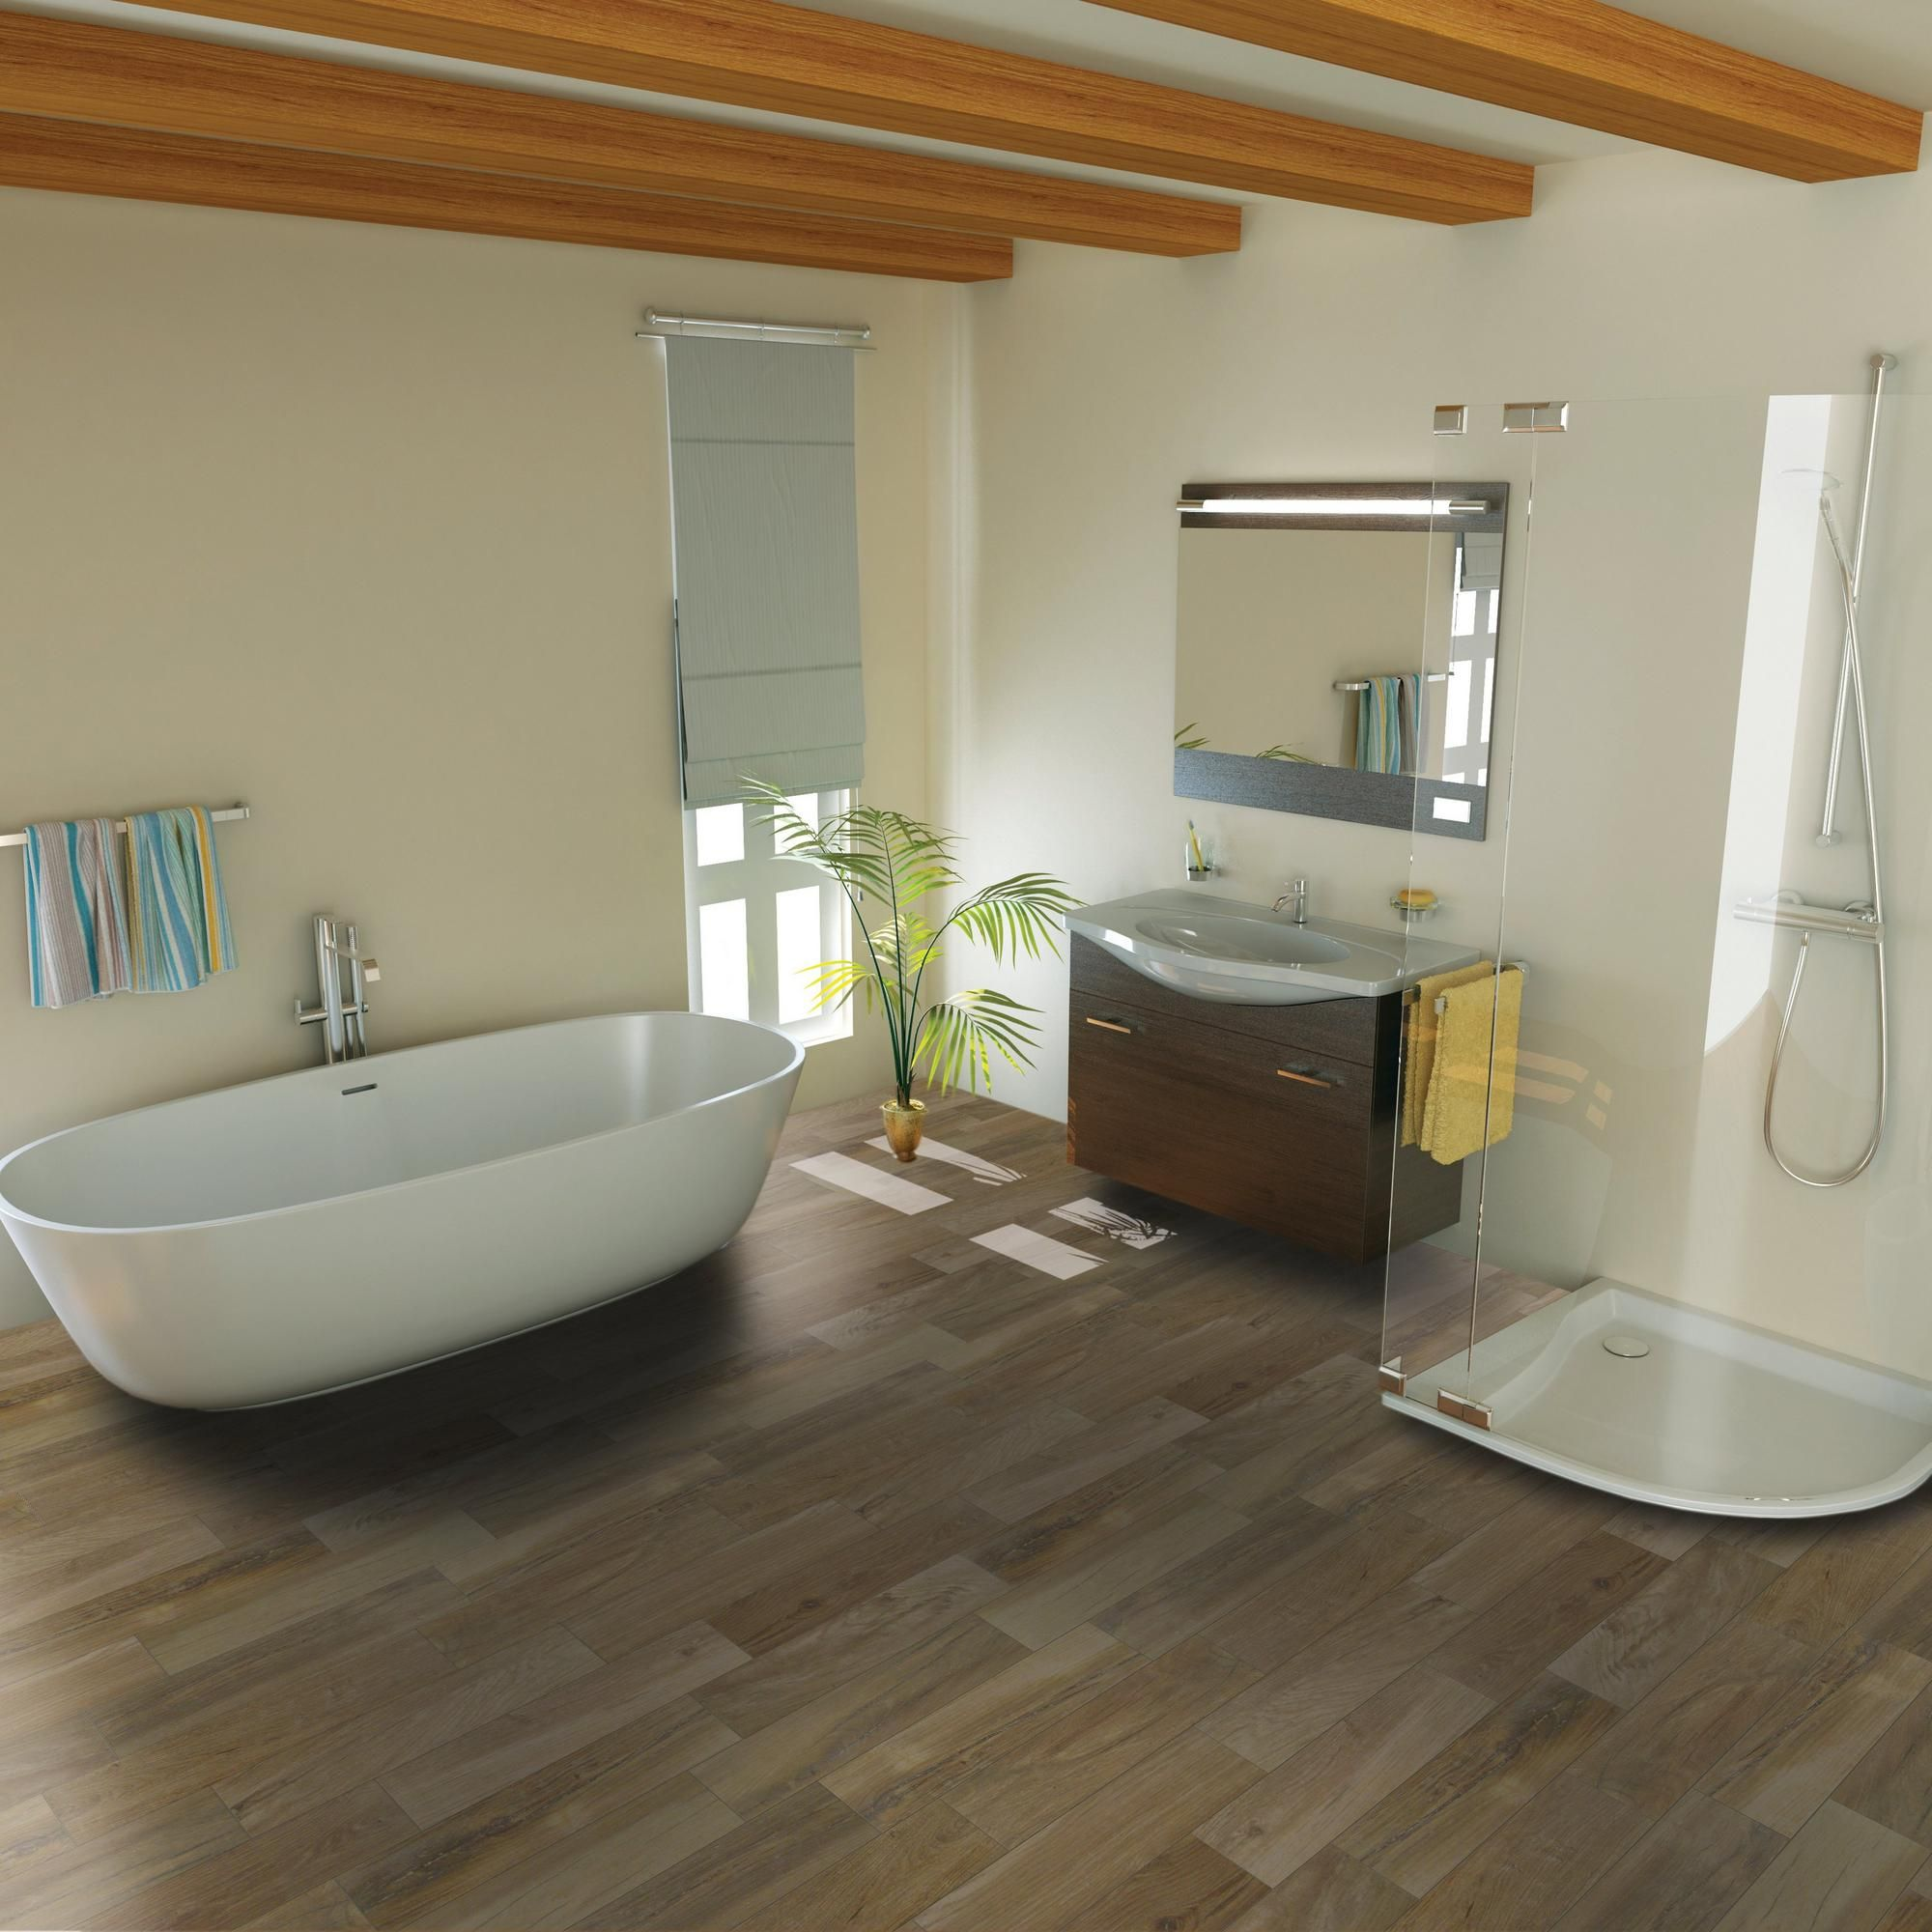 Tahoe ocre wood plank porcelain tile wood planks porcelain tile tahoe ocre wood plank porcelain tile floor decorwood dailygadgetfo Choice Image